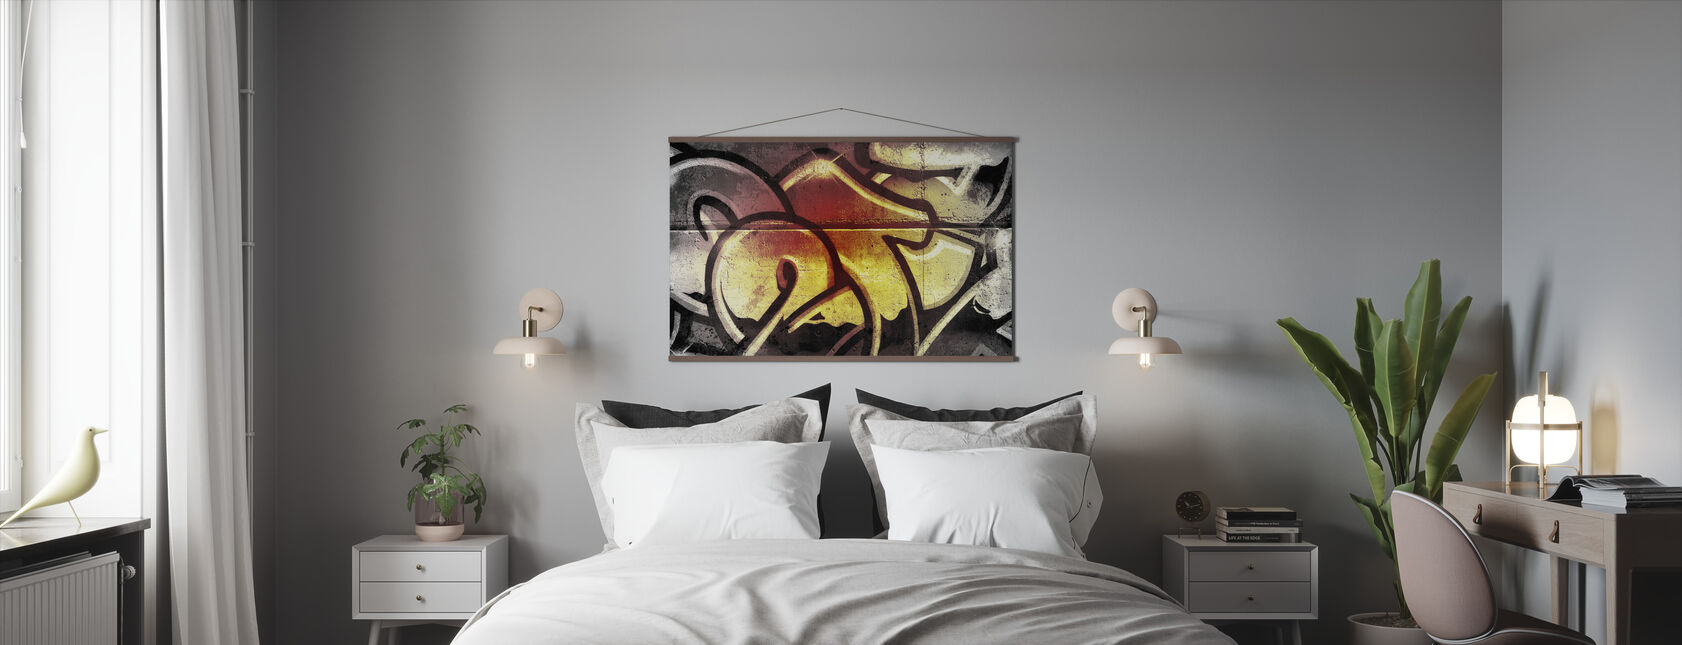 Golden Graffiti - Poster - Bedroom